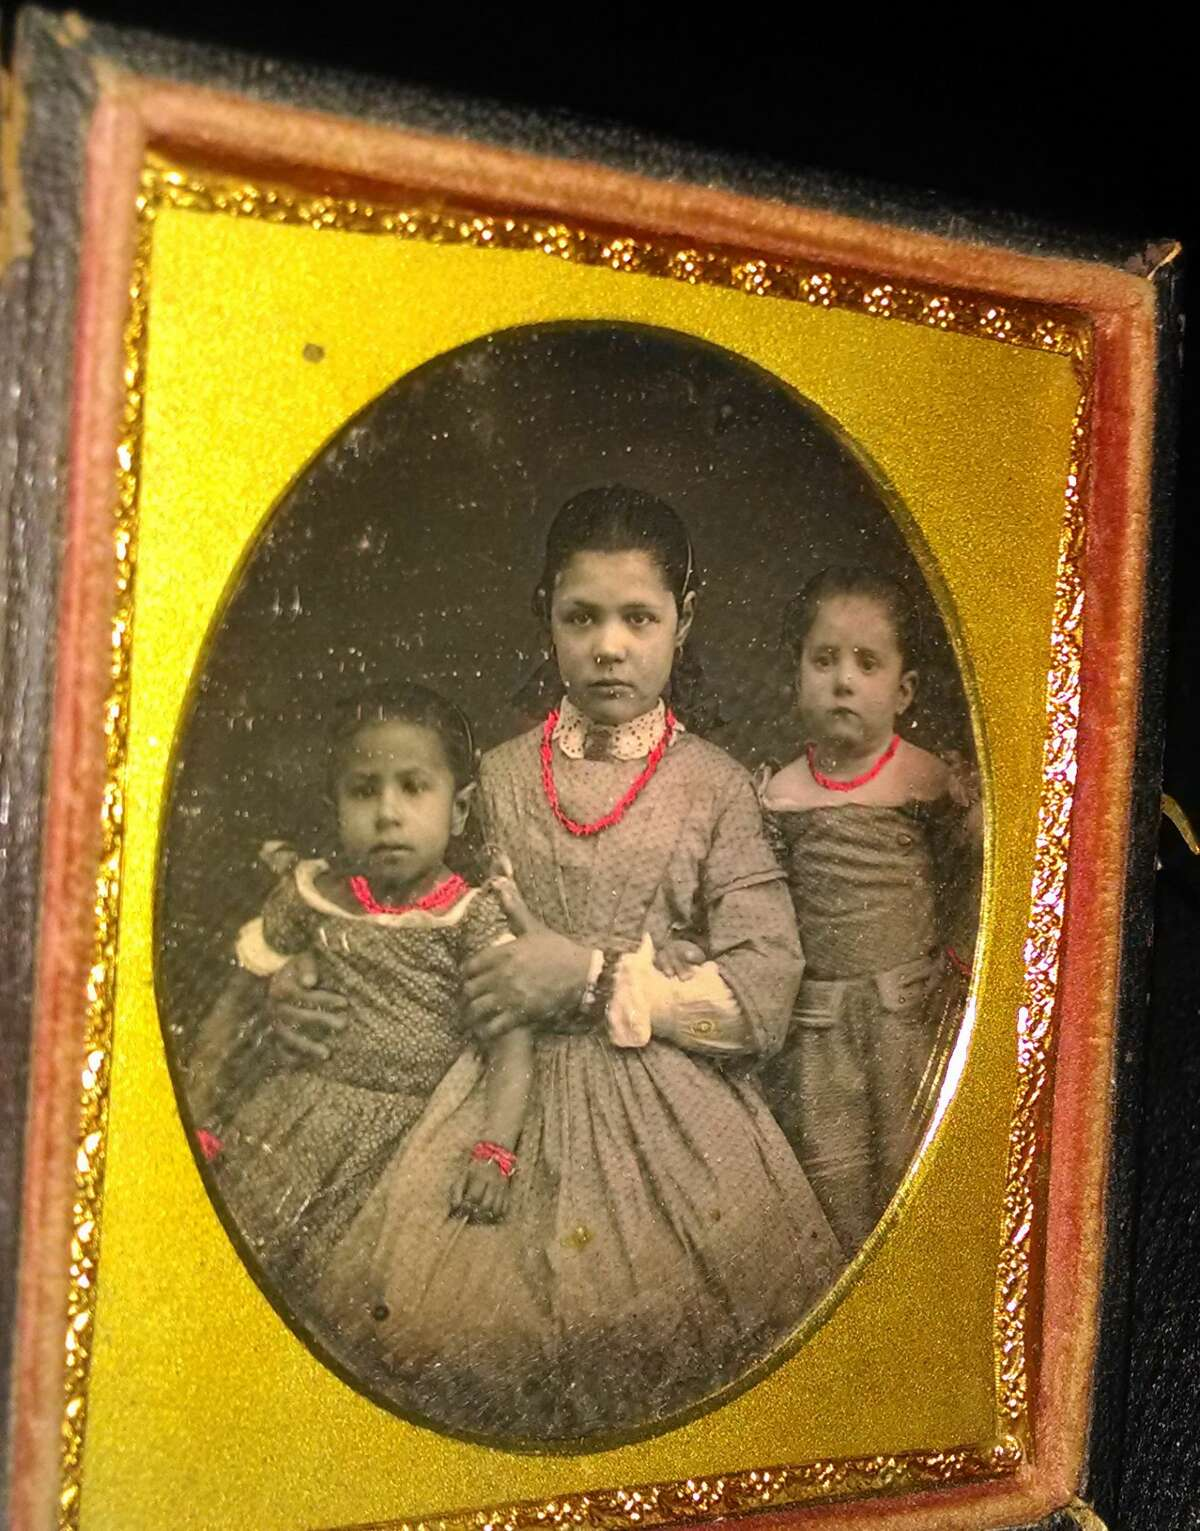 Minnie (left) and Jane Amelia (middle) Knapp, African American wards and servants of the Van Rensselaers. The daughter of another Cherry Hill servant appears on the right. (Image courtesy Historic Cherry Hill)